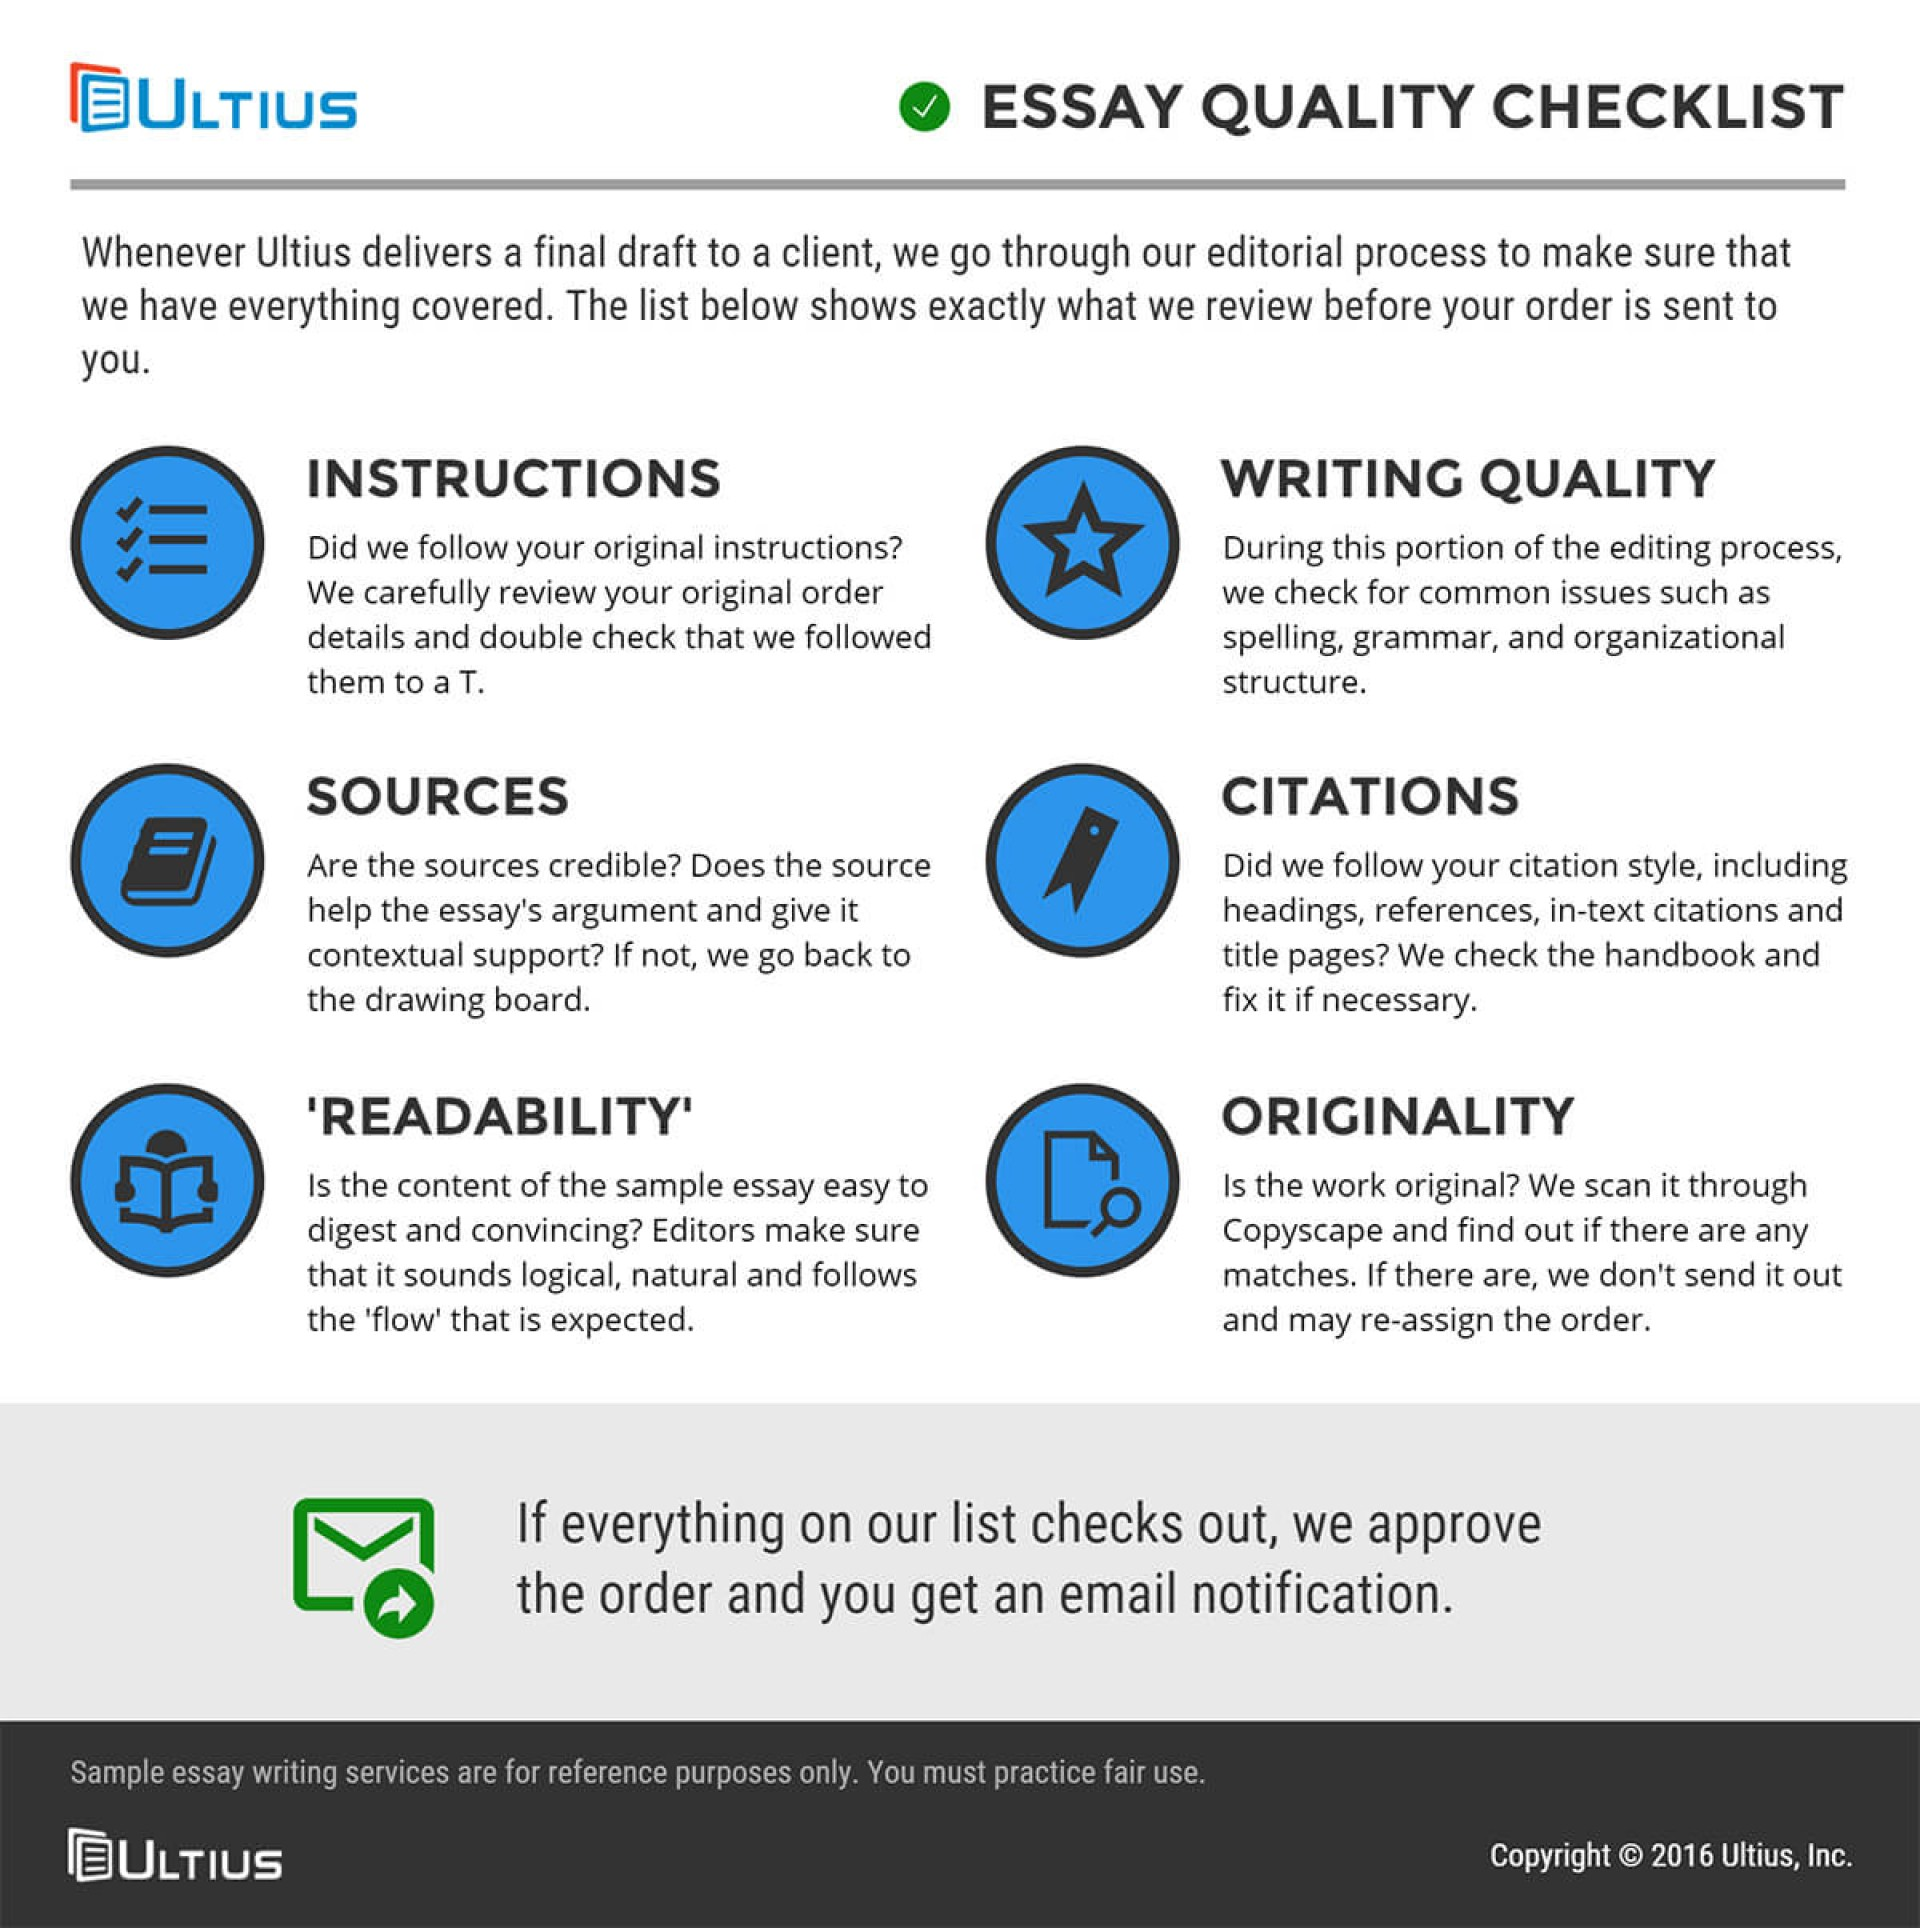 001 Essay Quality Checklist Order Online Incredible 1920